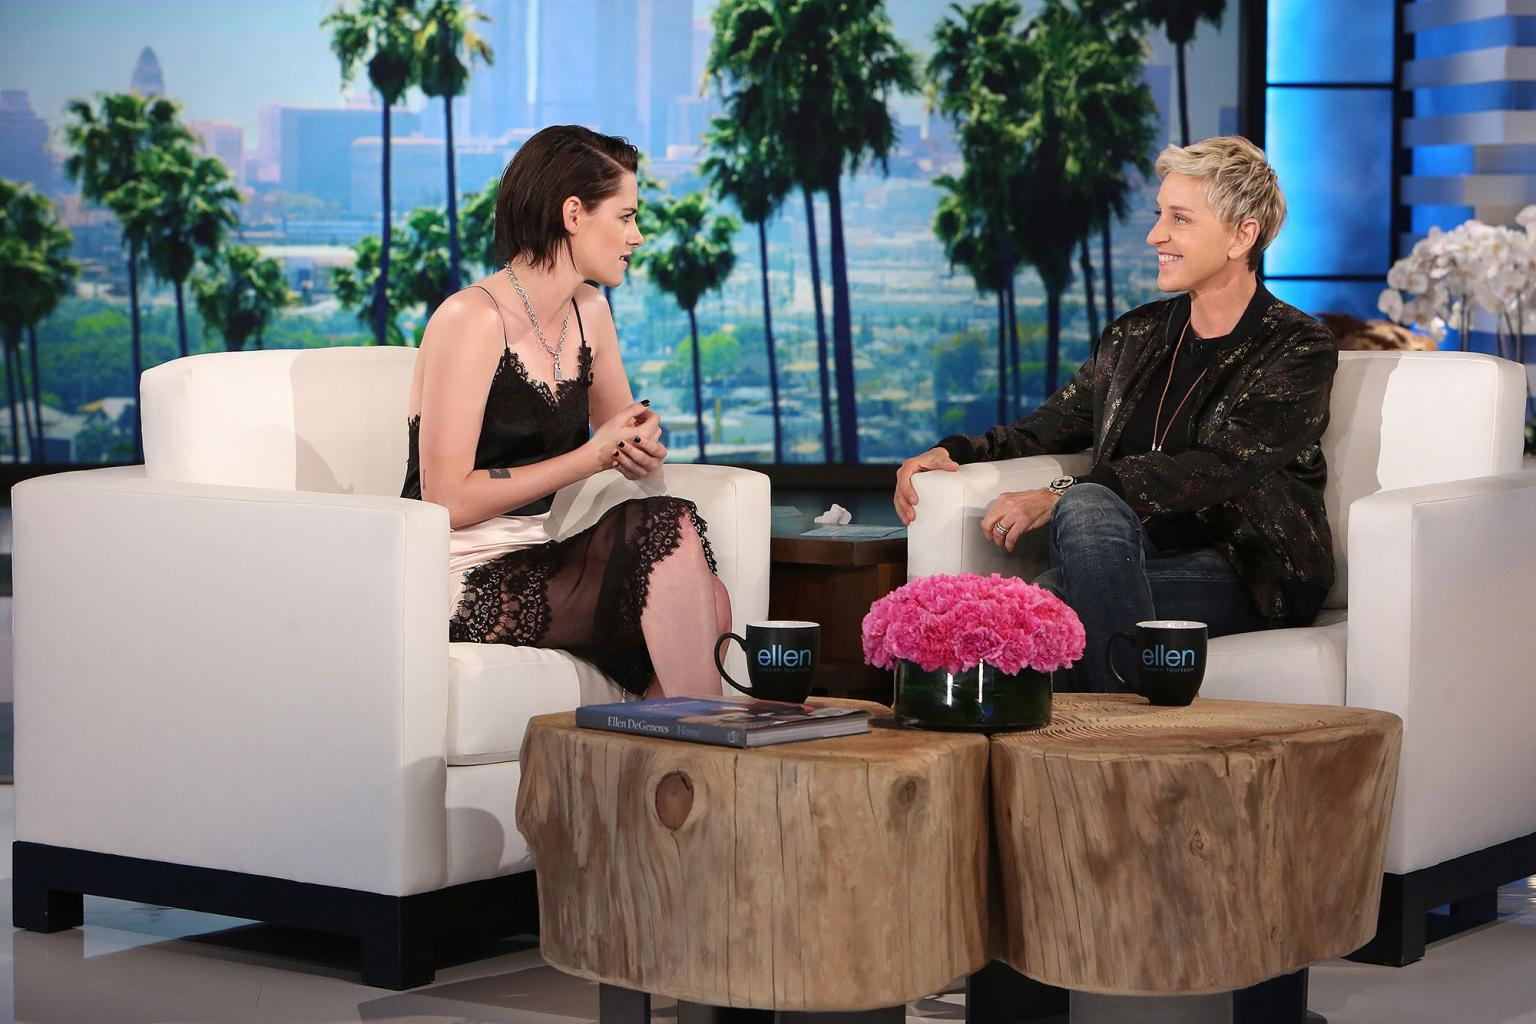 Kristen Stewart Recalls Her 'Uncomfortable' Twilight Days